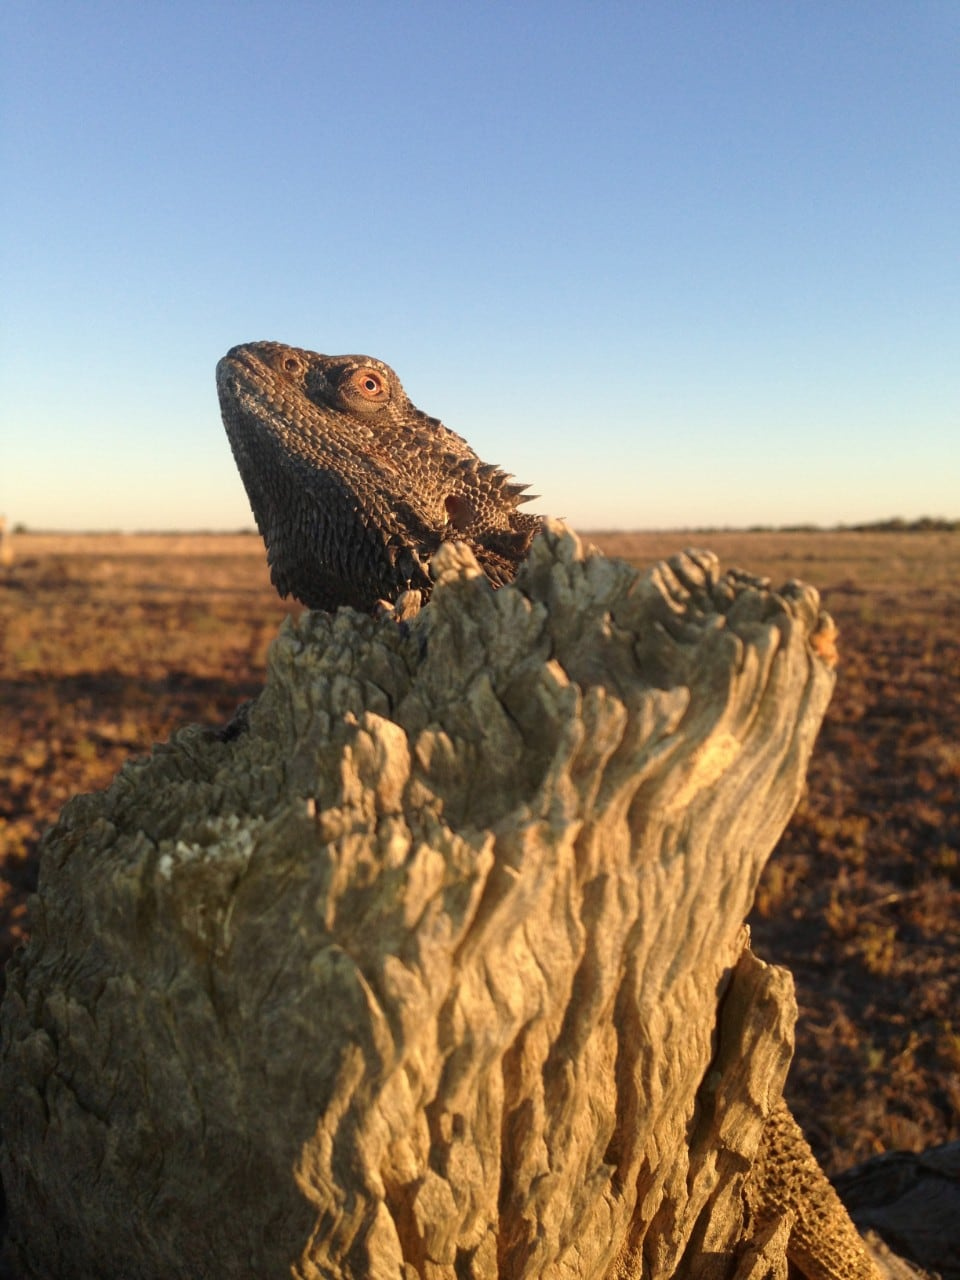 Lizard on stump tree